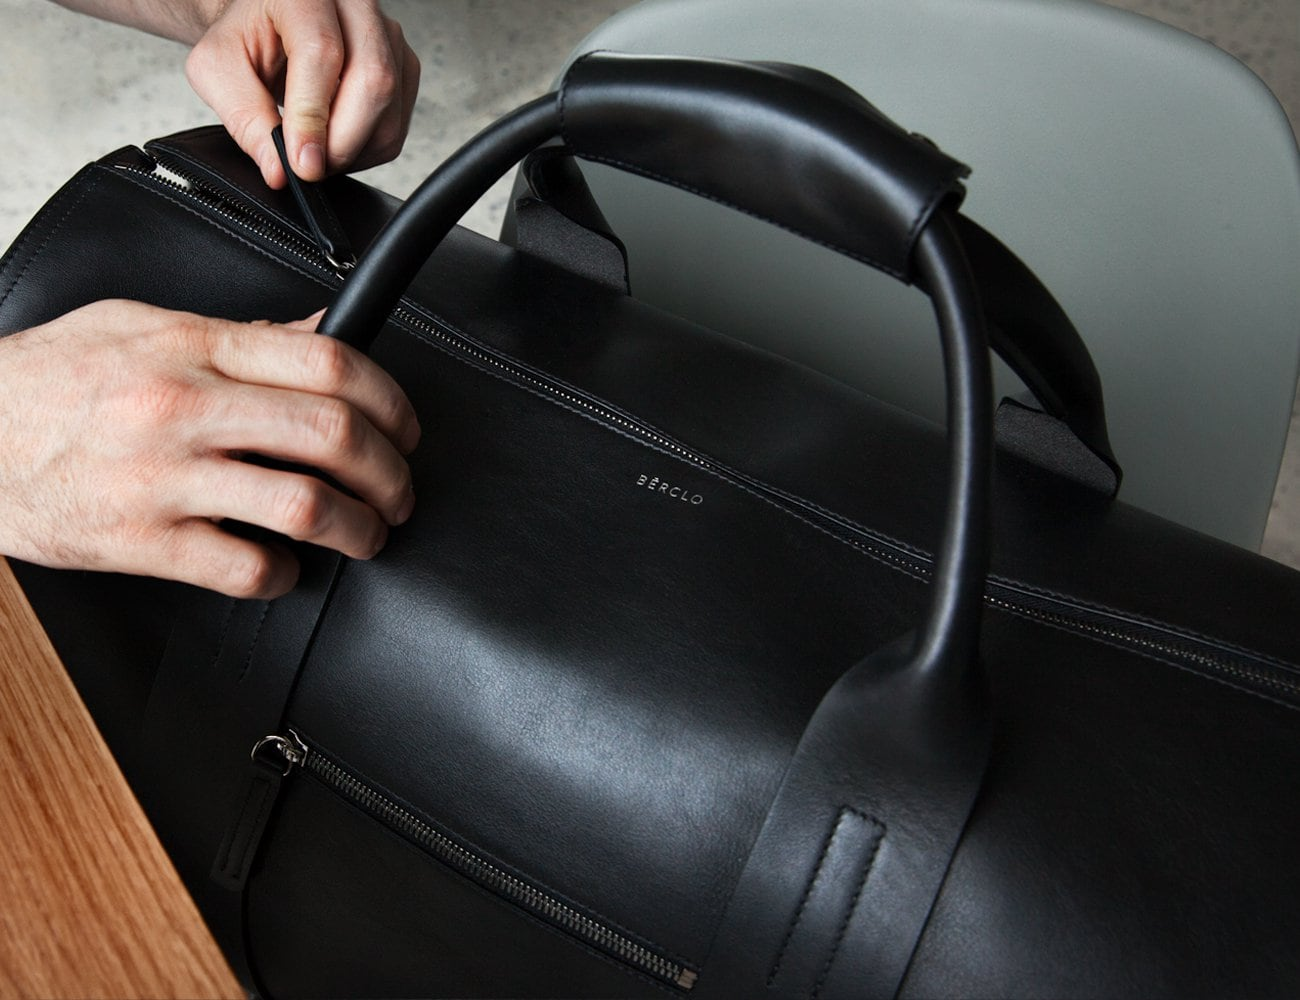 Berclo Italian Leather Bags